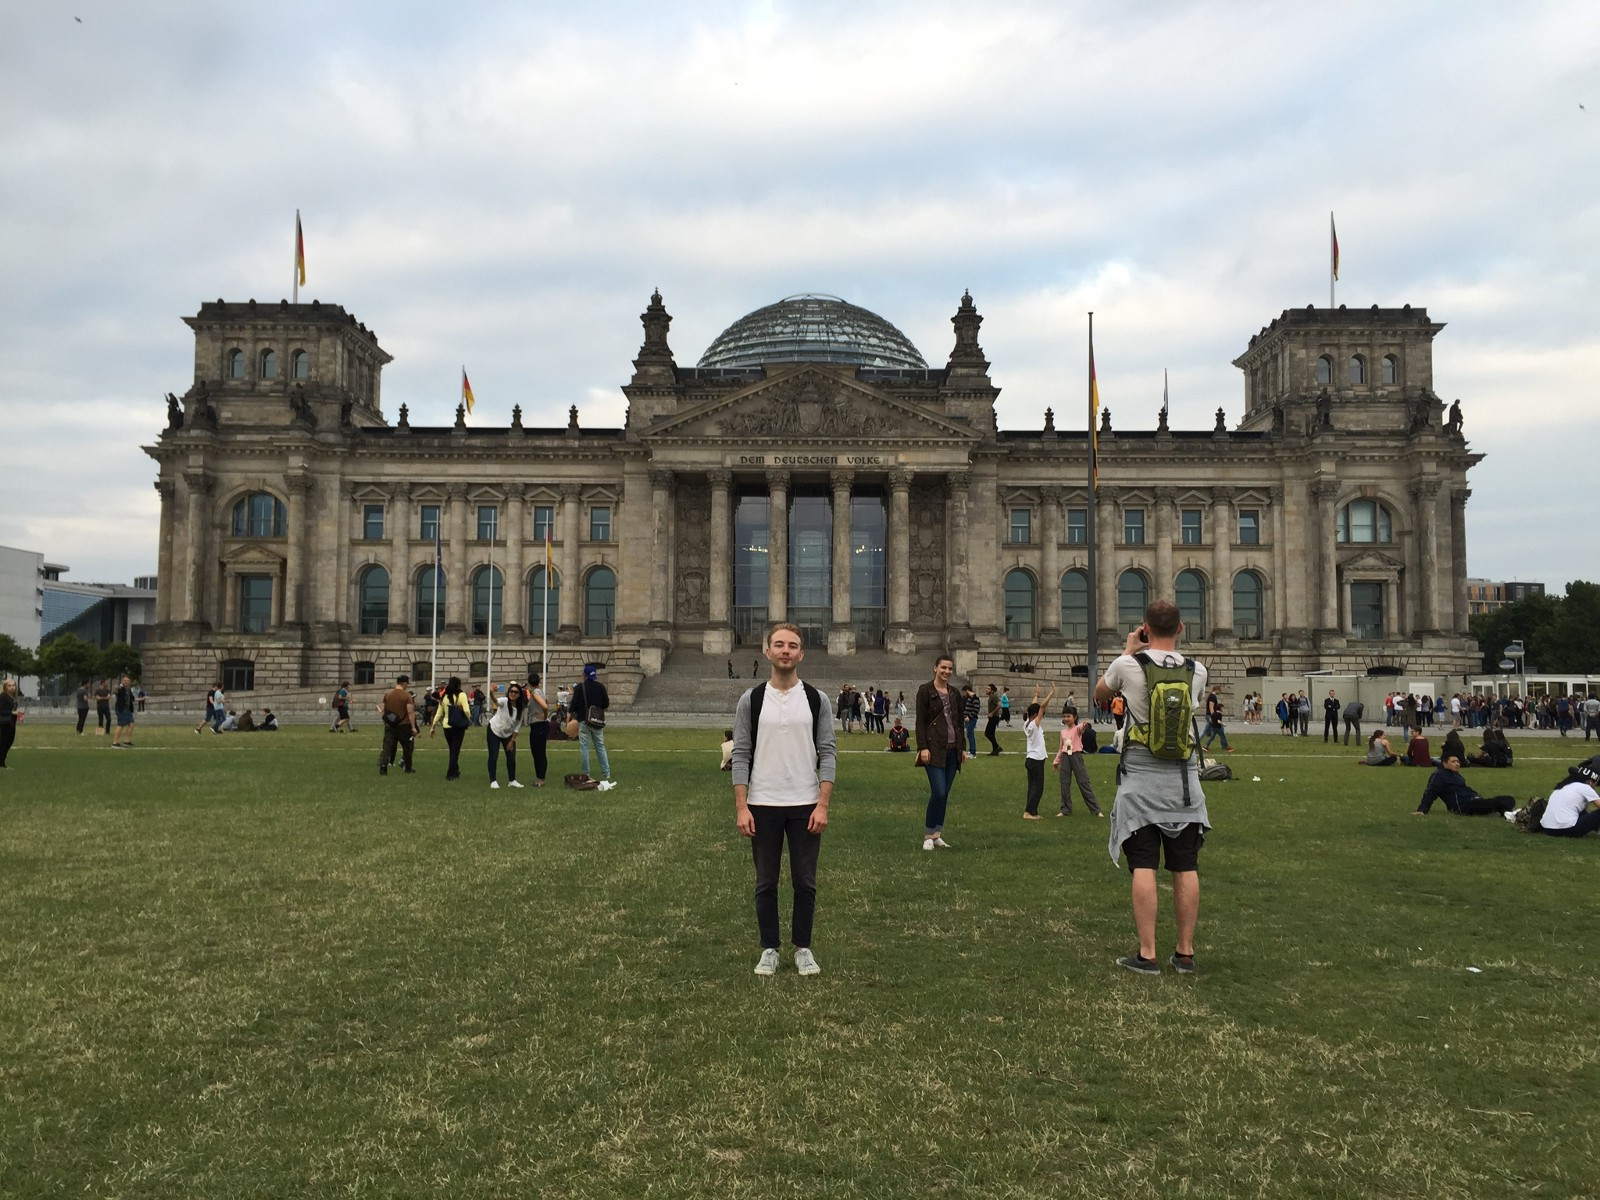 Standing in front of the Reichstag